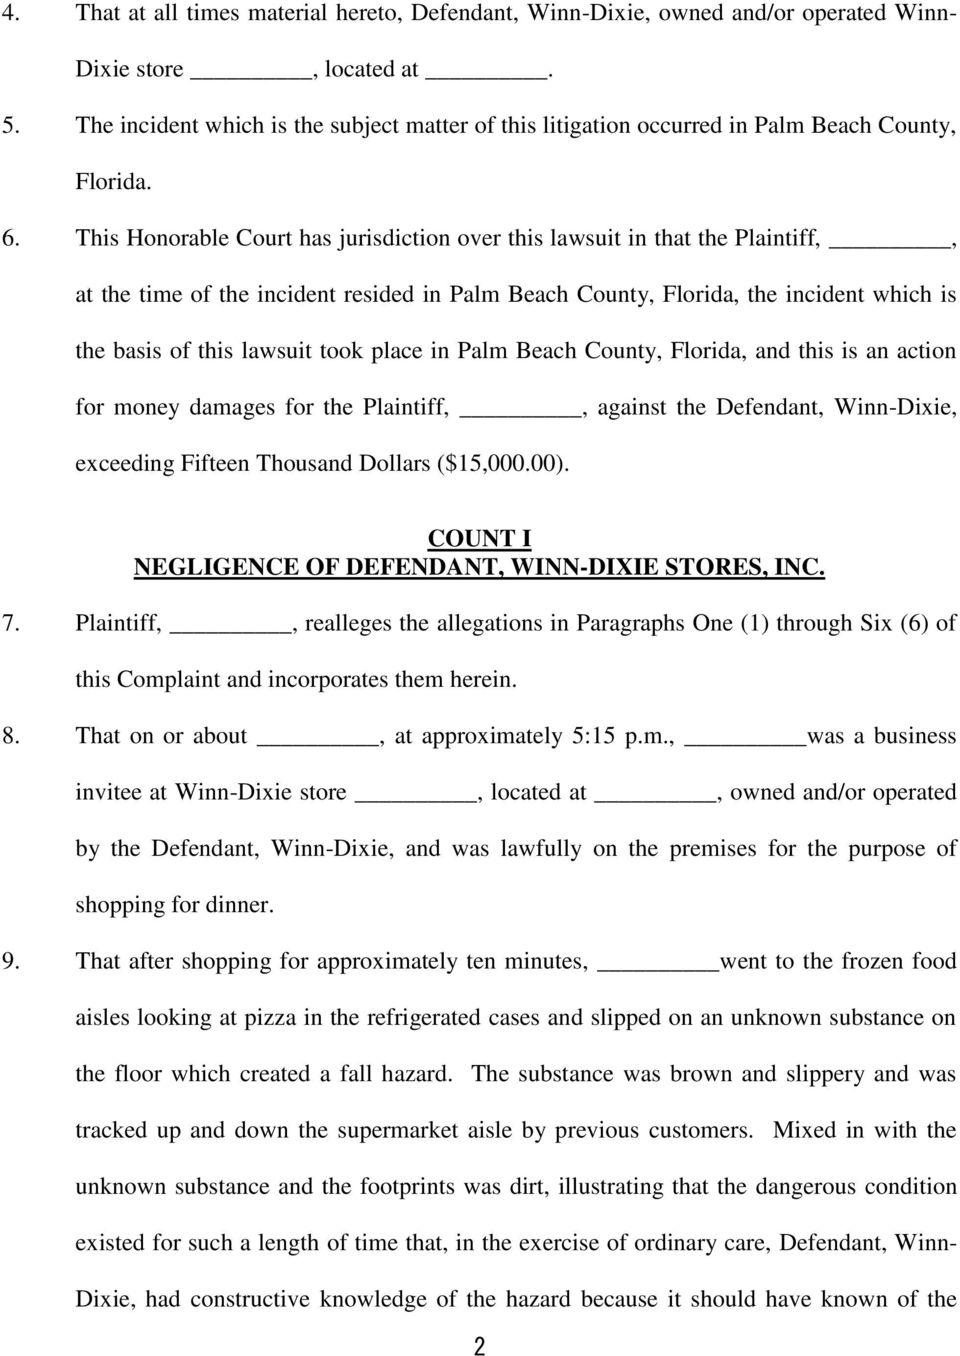 This Honorable Court has jurisdiction over this lawsuit in that the Plaintiff,, at the time of the incident resided in Palm Beach County, Florida, the incident which is the basis of this lawsuit took